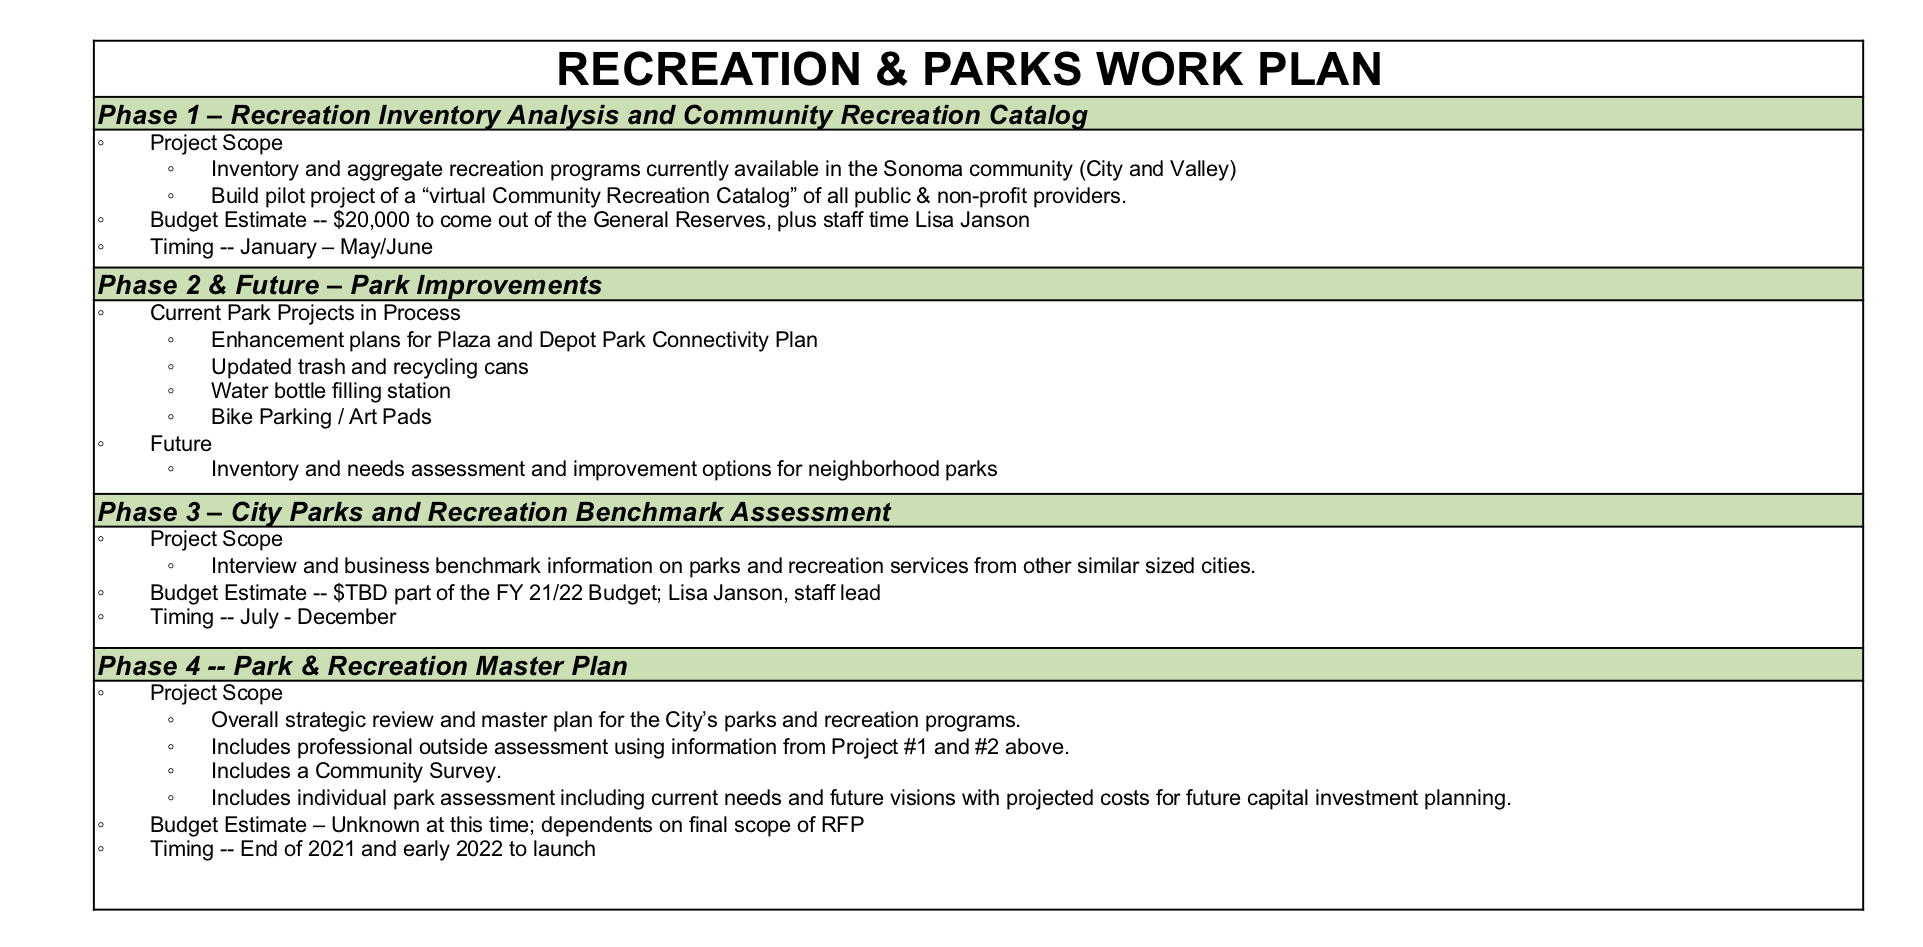 Recreation Work Plan Phases